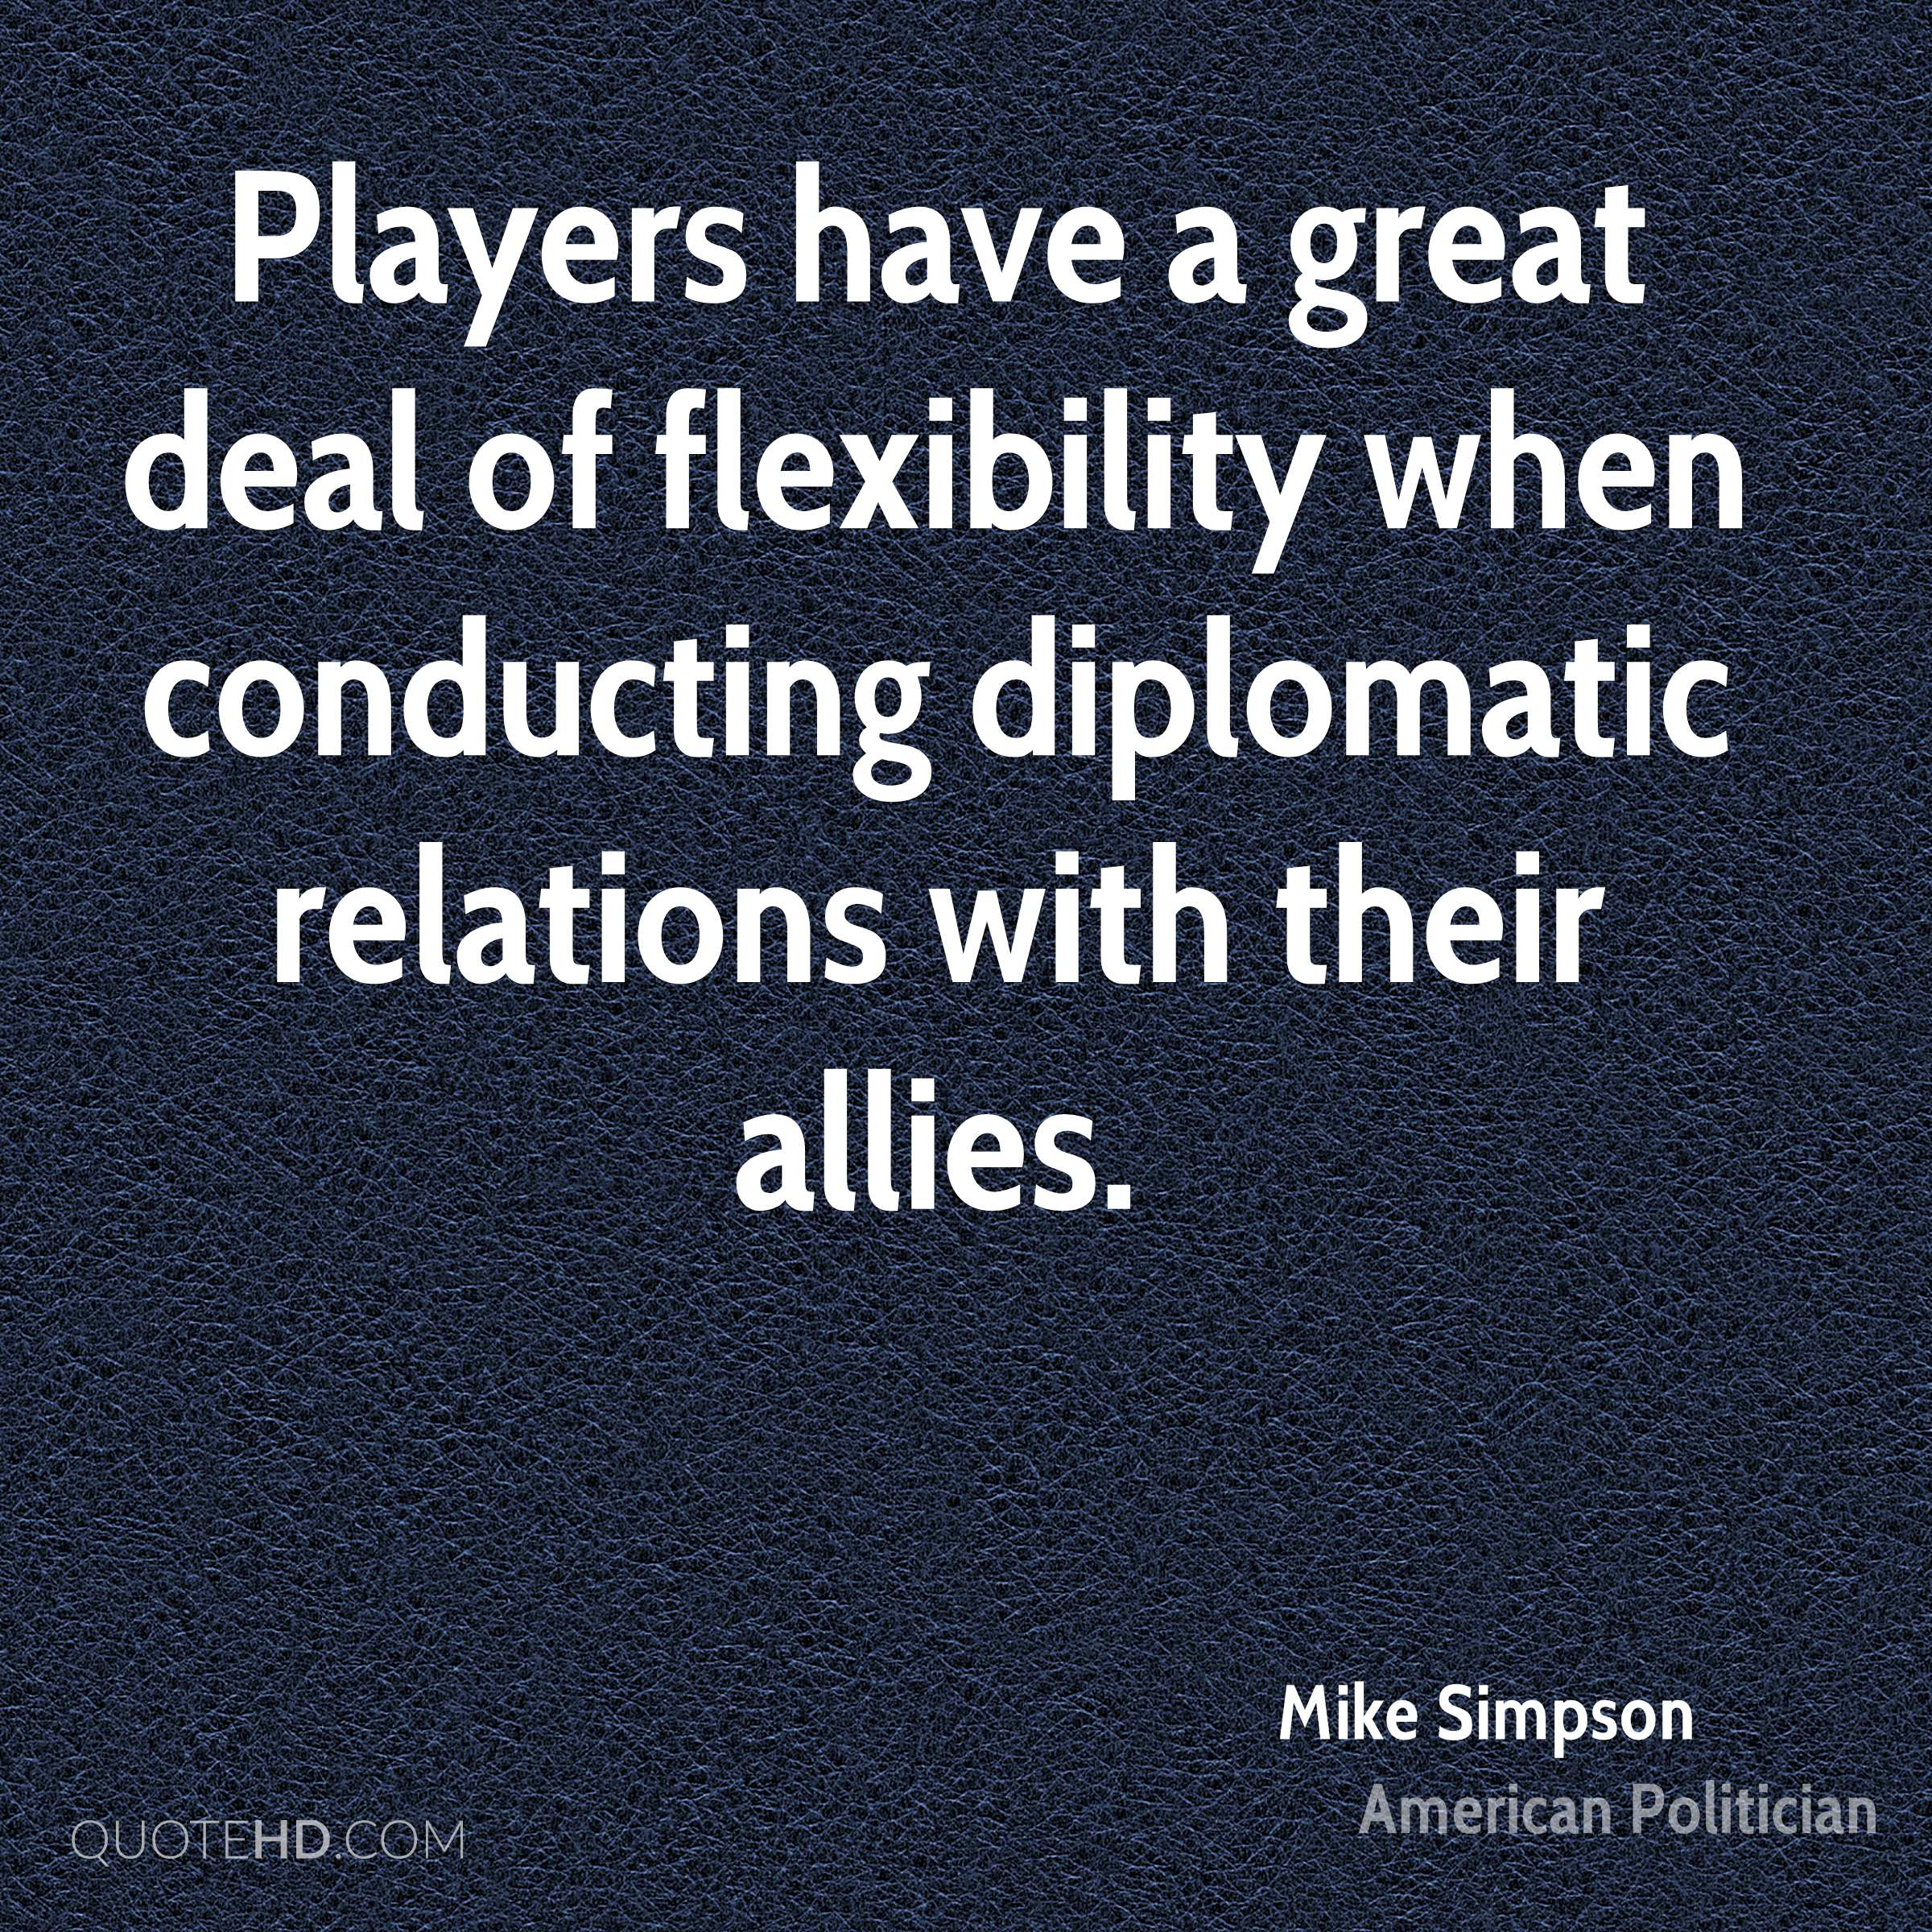 Players have a great deal of flexibility when conducting diplomatic relations with their allies.